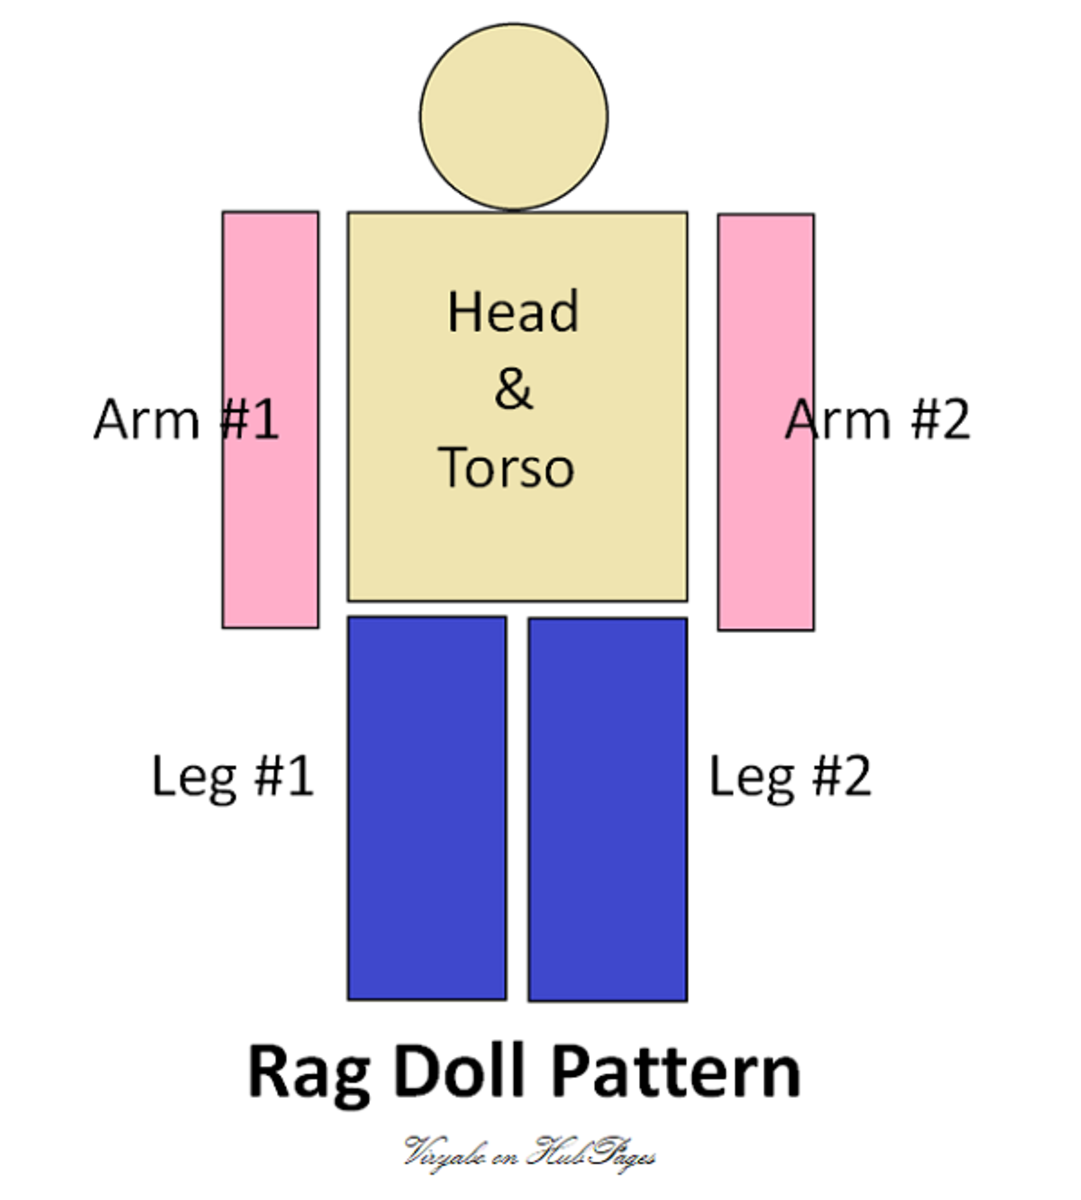 A rag doll pattern showing the different parts of its pattern.